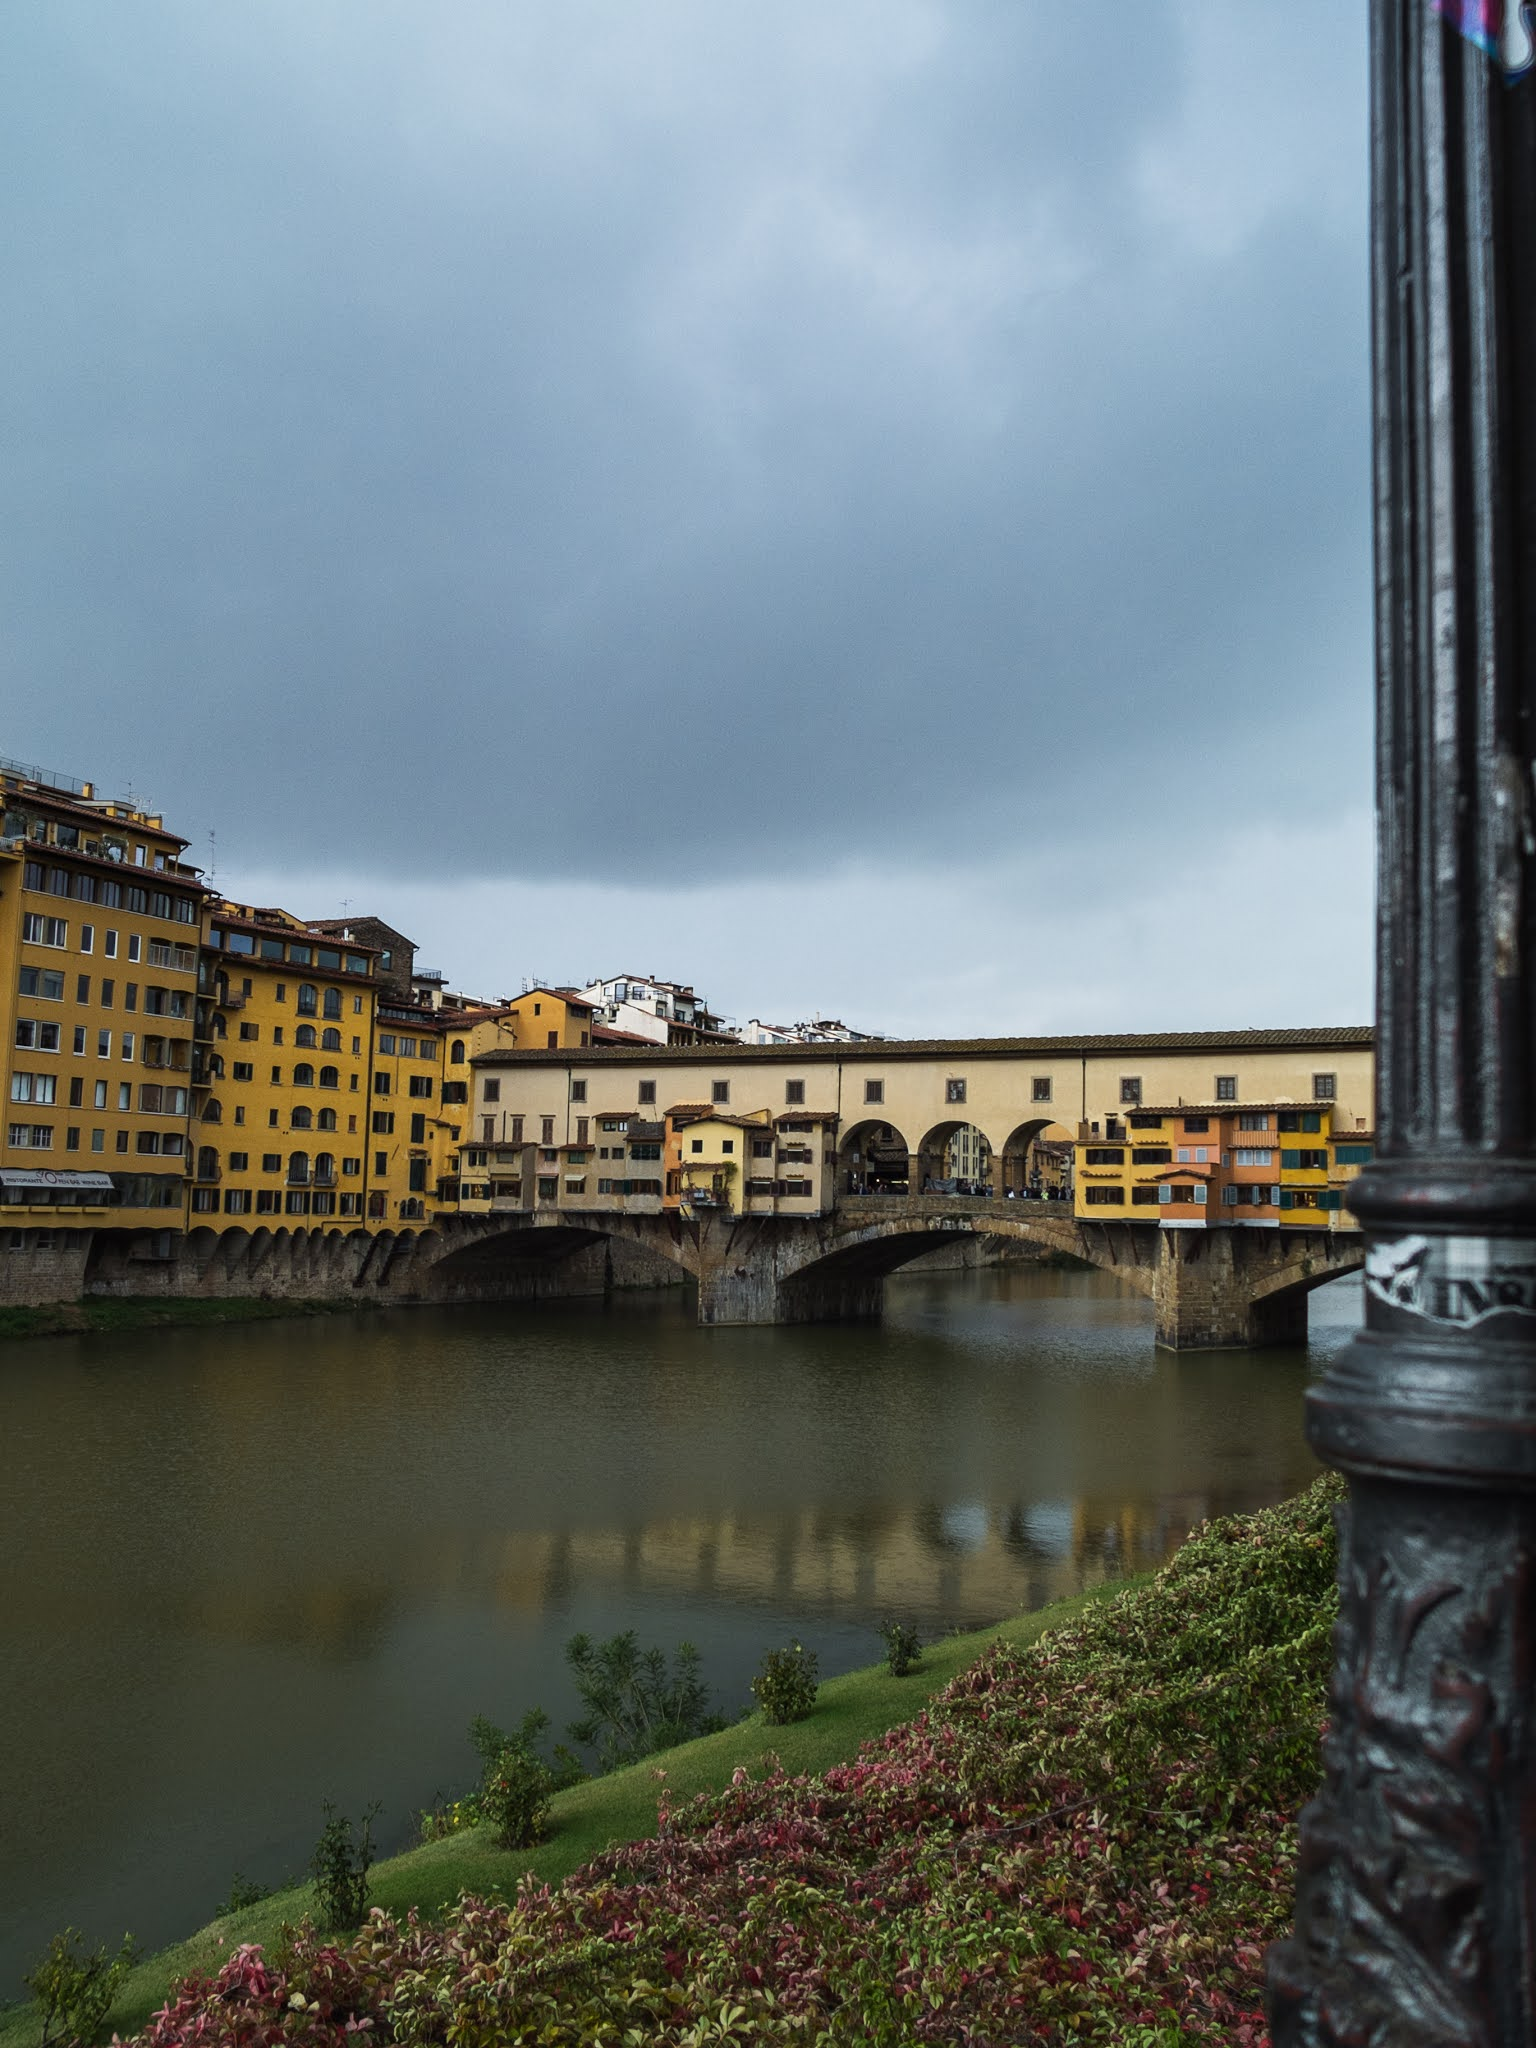 View of Ponte Vecchio with the embankment and a street light post to the right.